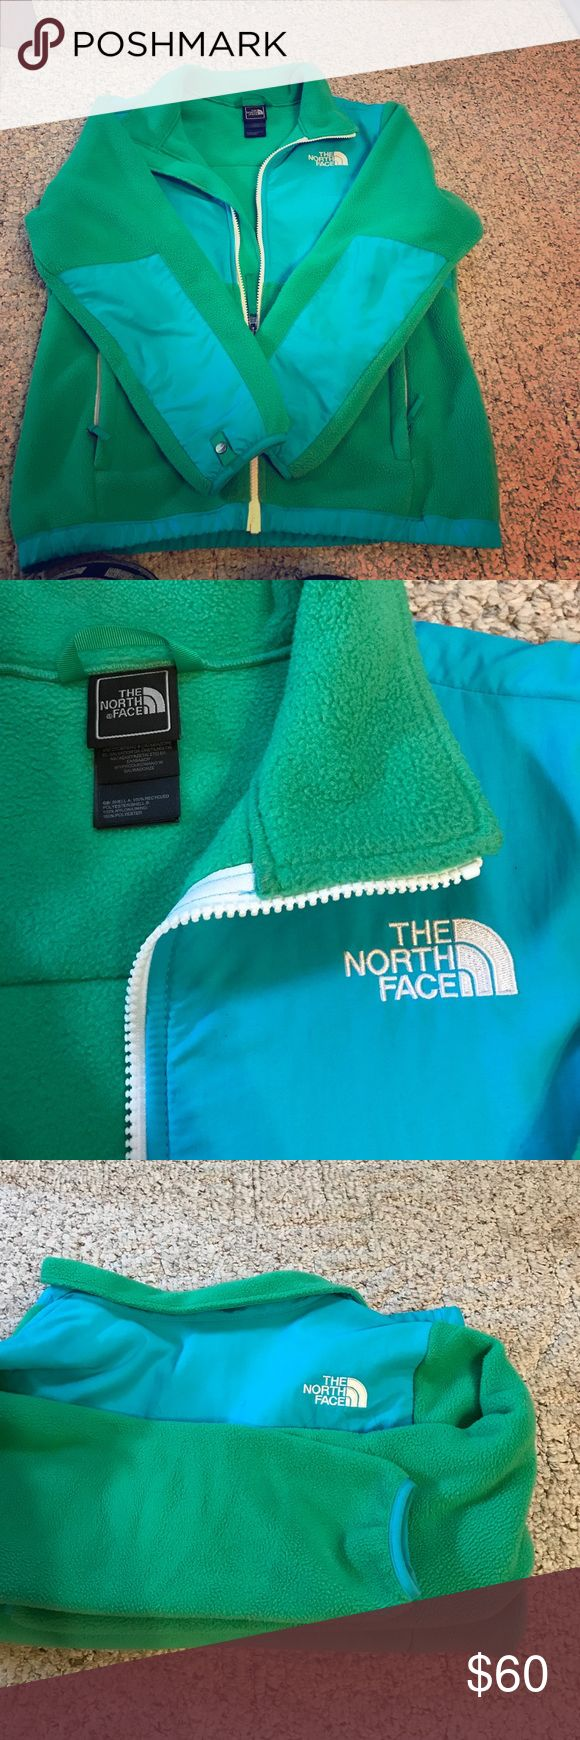 Girls North Face jacket Gently used girl's North Face. Very vibrant and bold colors. No signs of damage or wear. Large size can fit a younger teen or petite adult. North Face Jackets & Coats